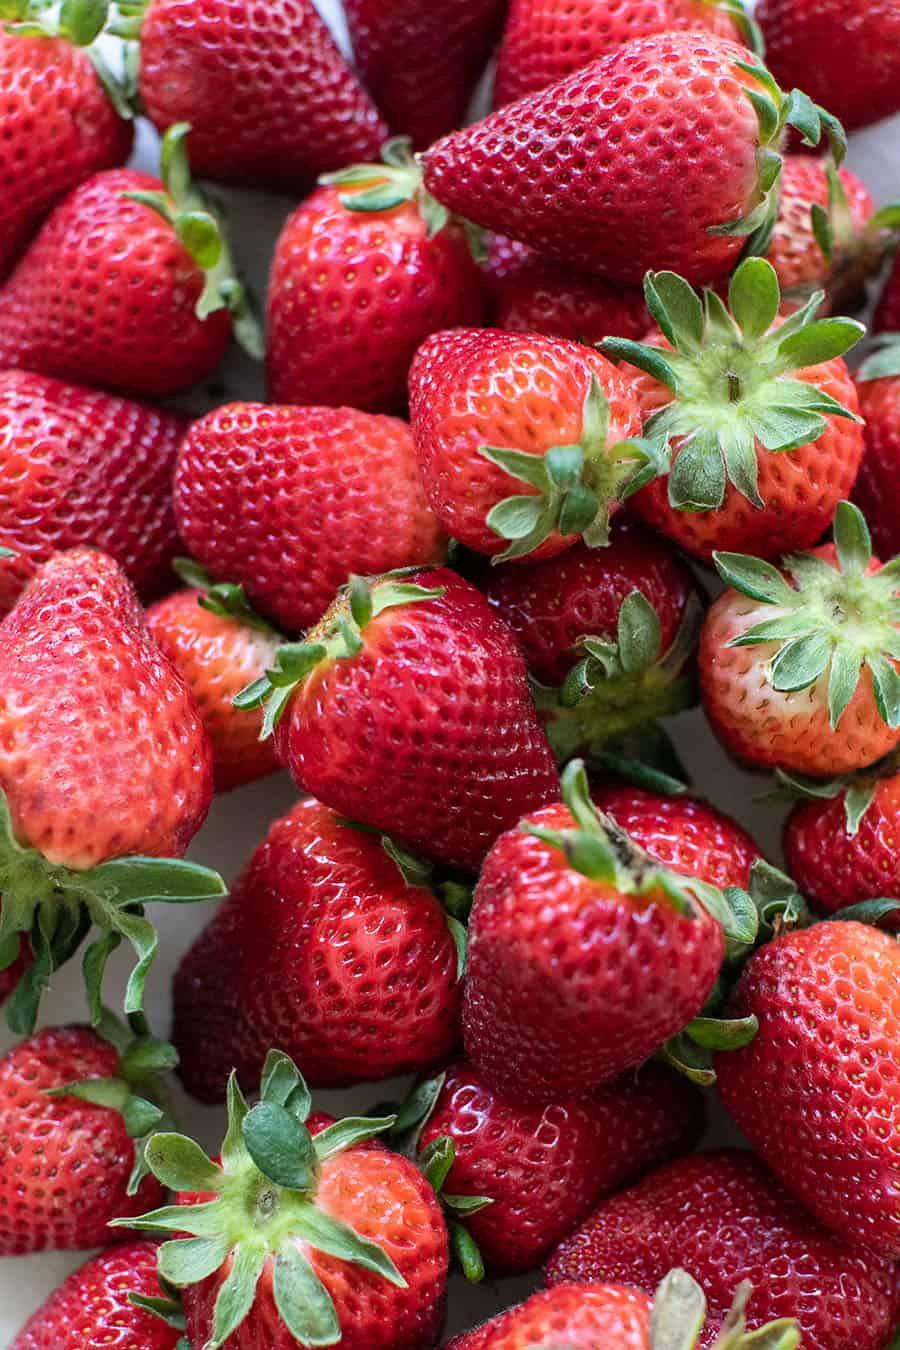 Close up photo of red strawberries